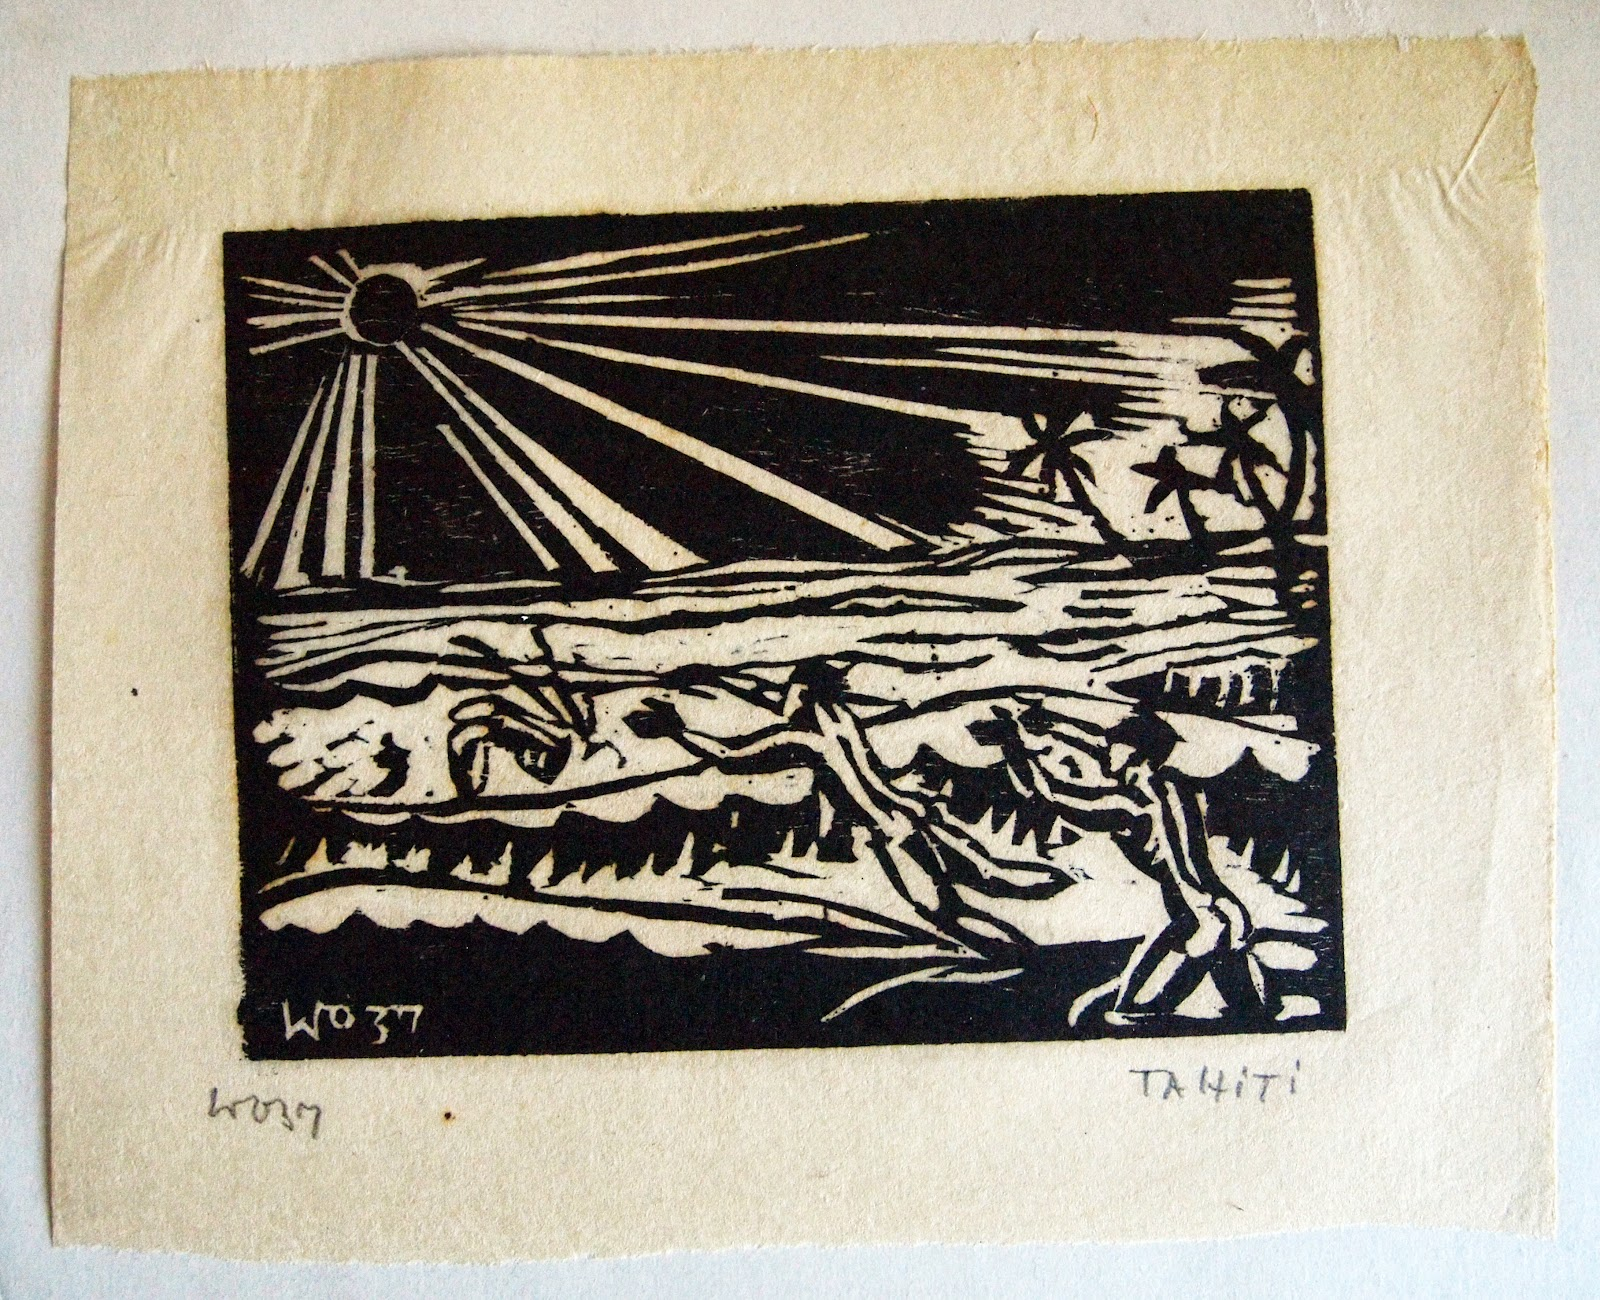 Bathers, hand print, 1937, family-owned